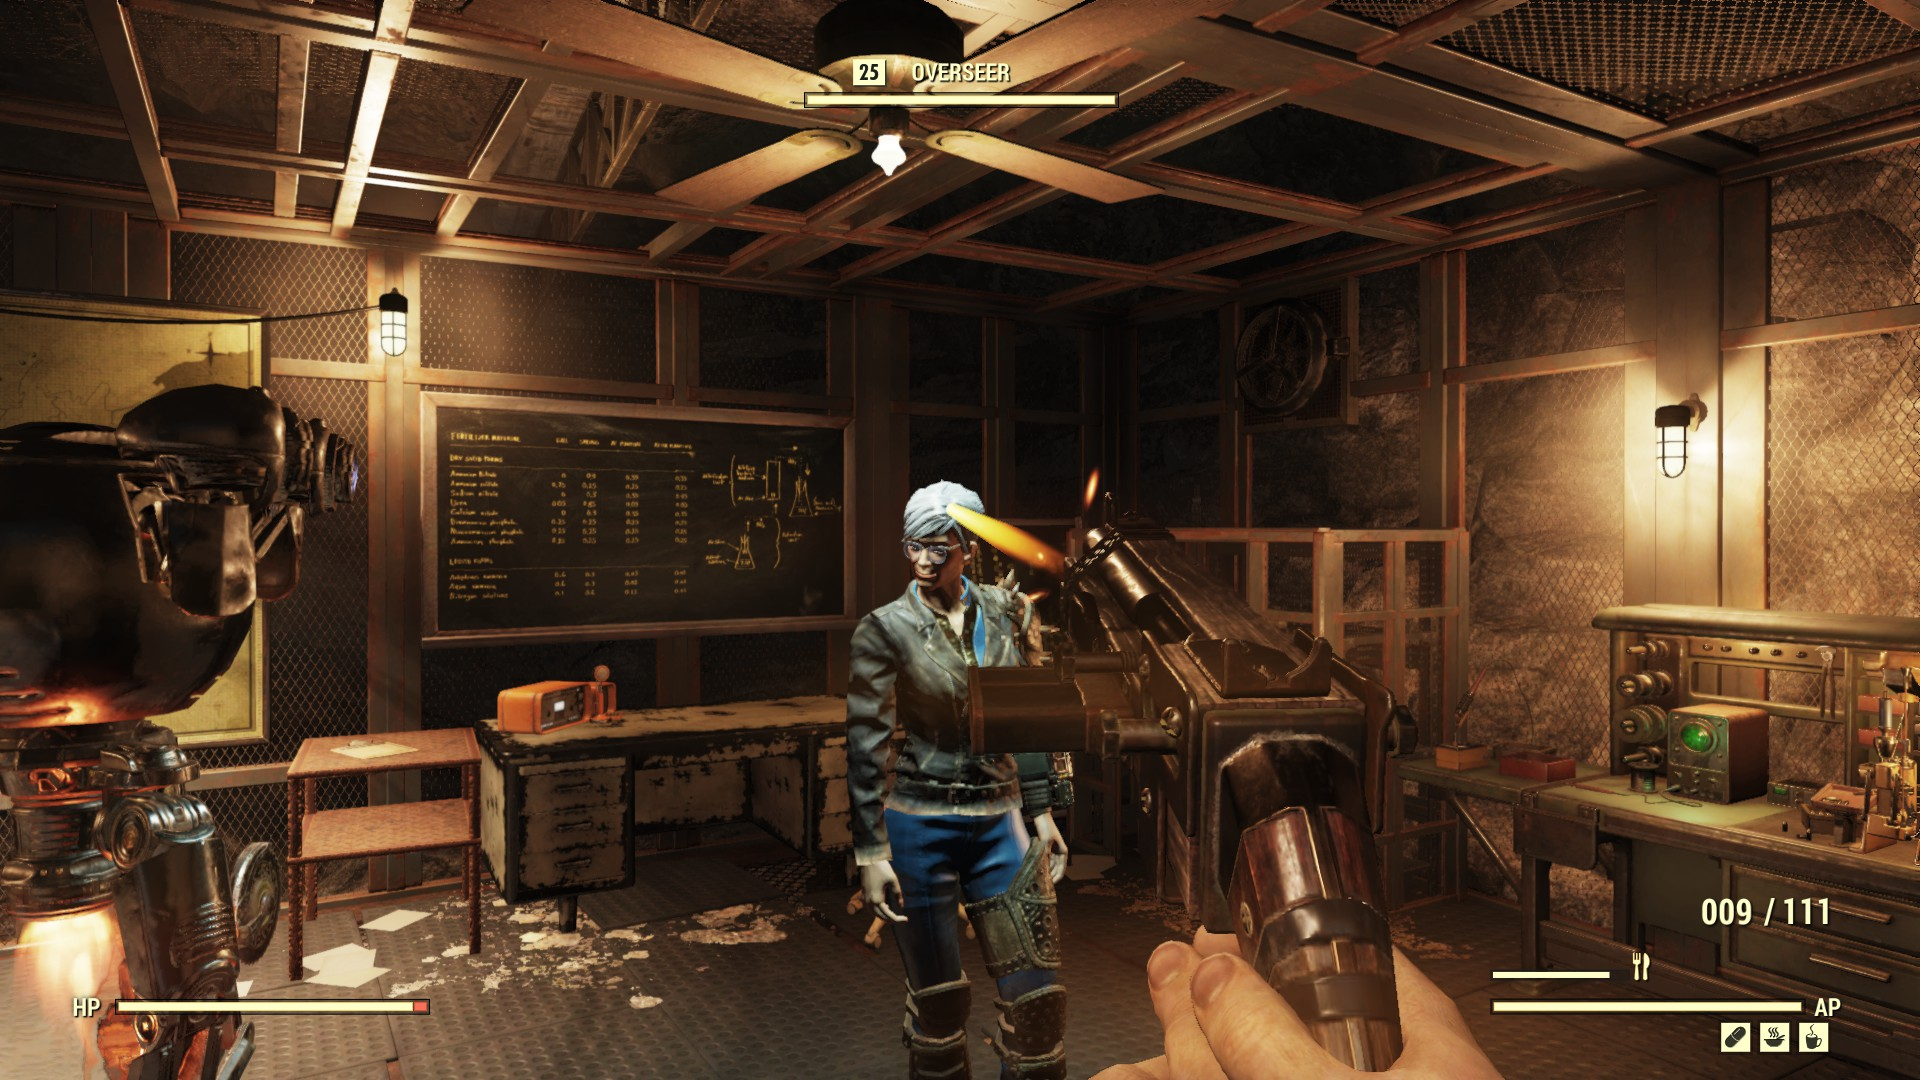 A screenshot showing Sin attempting to shoot the Fallout 76 Overseer in the head